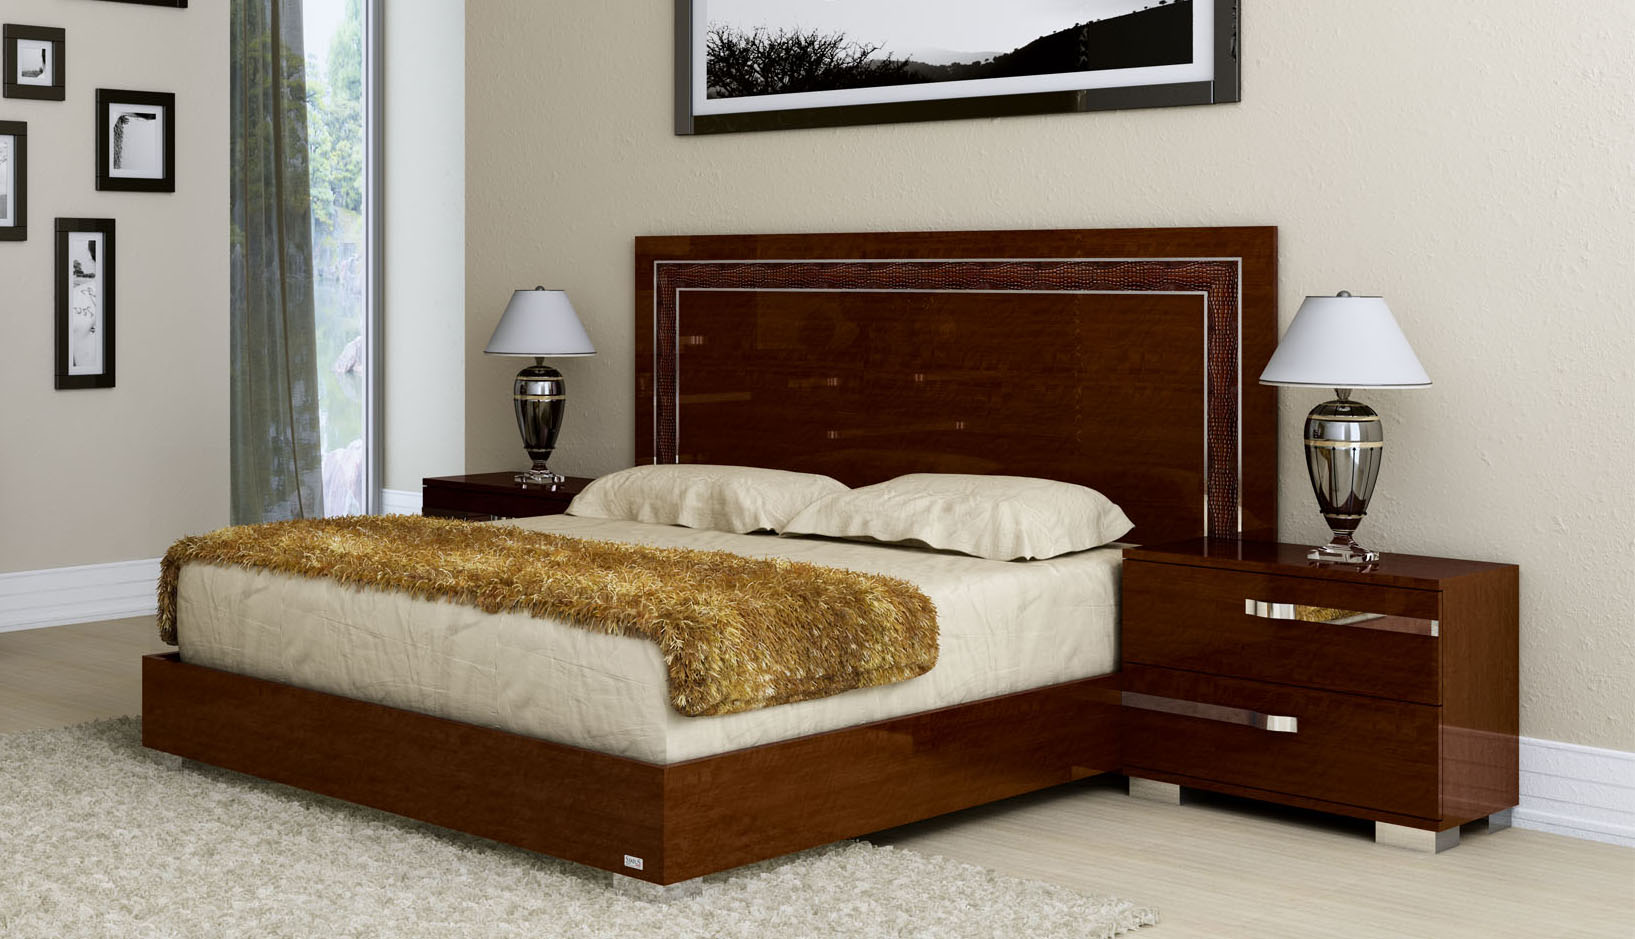 Made in italy leather luxury platform bed el paso texas ahvol Jewish master bedroom two beds